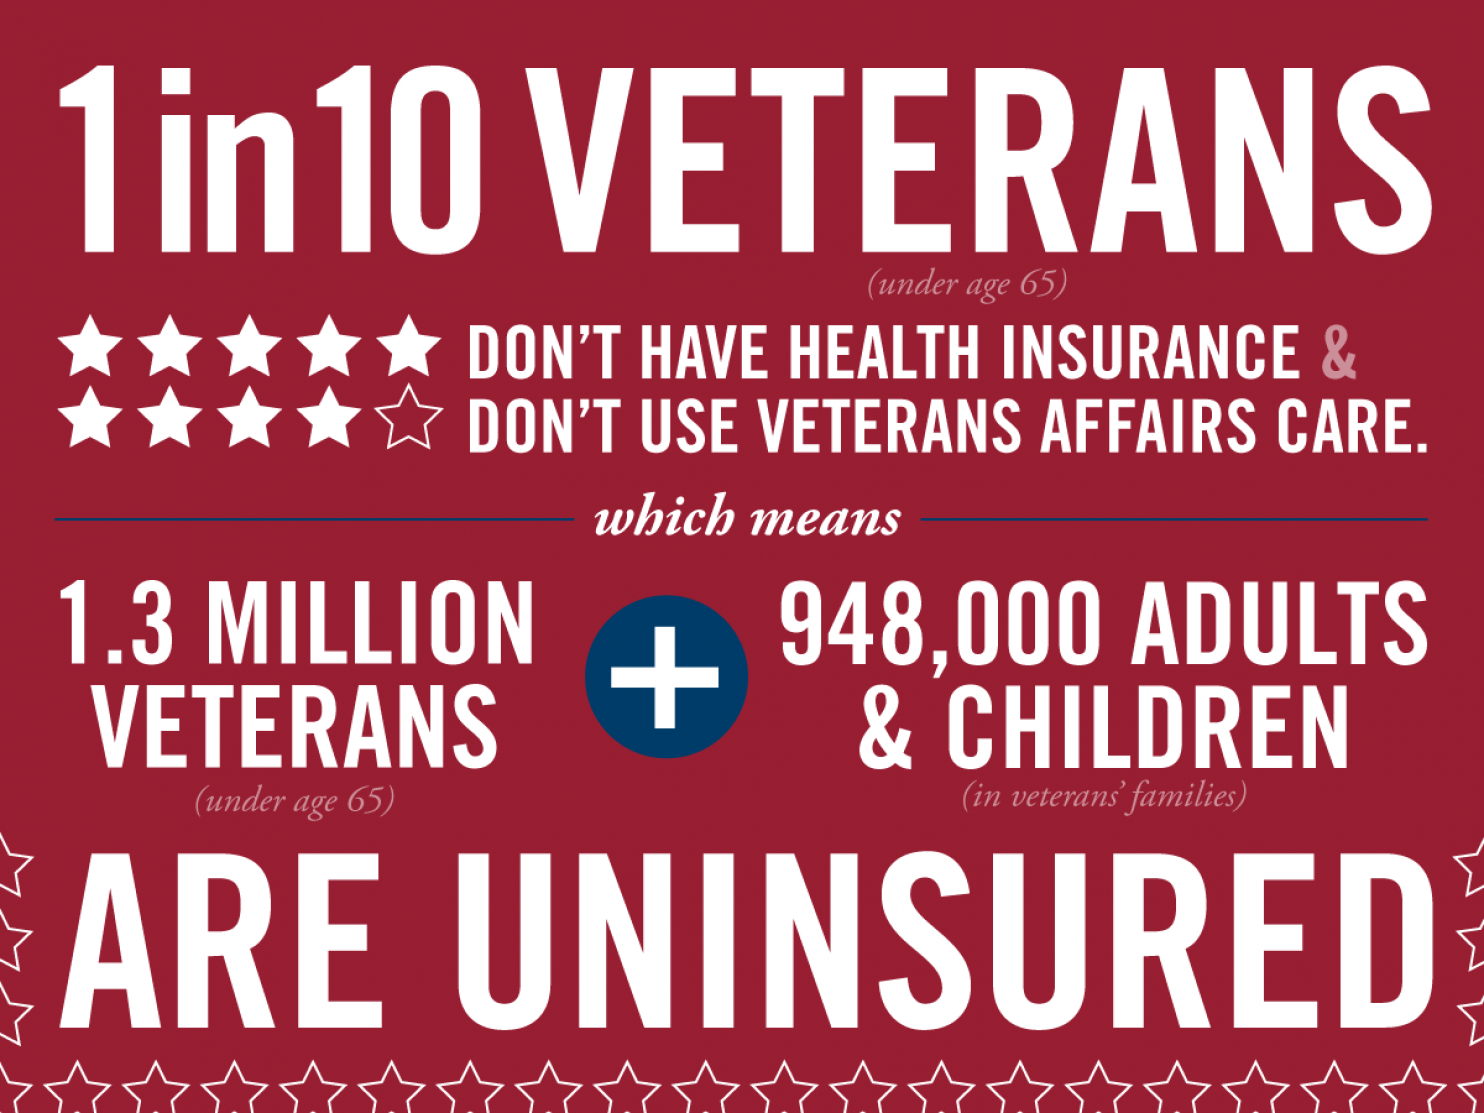 One In 10 Veterans Lacks Health Insurance Obamacare Could Change